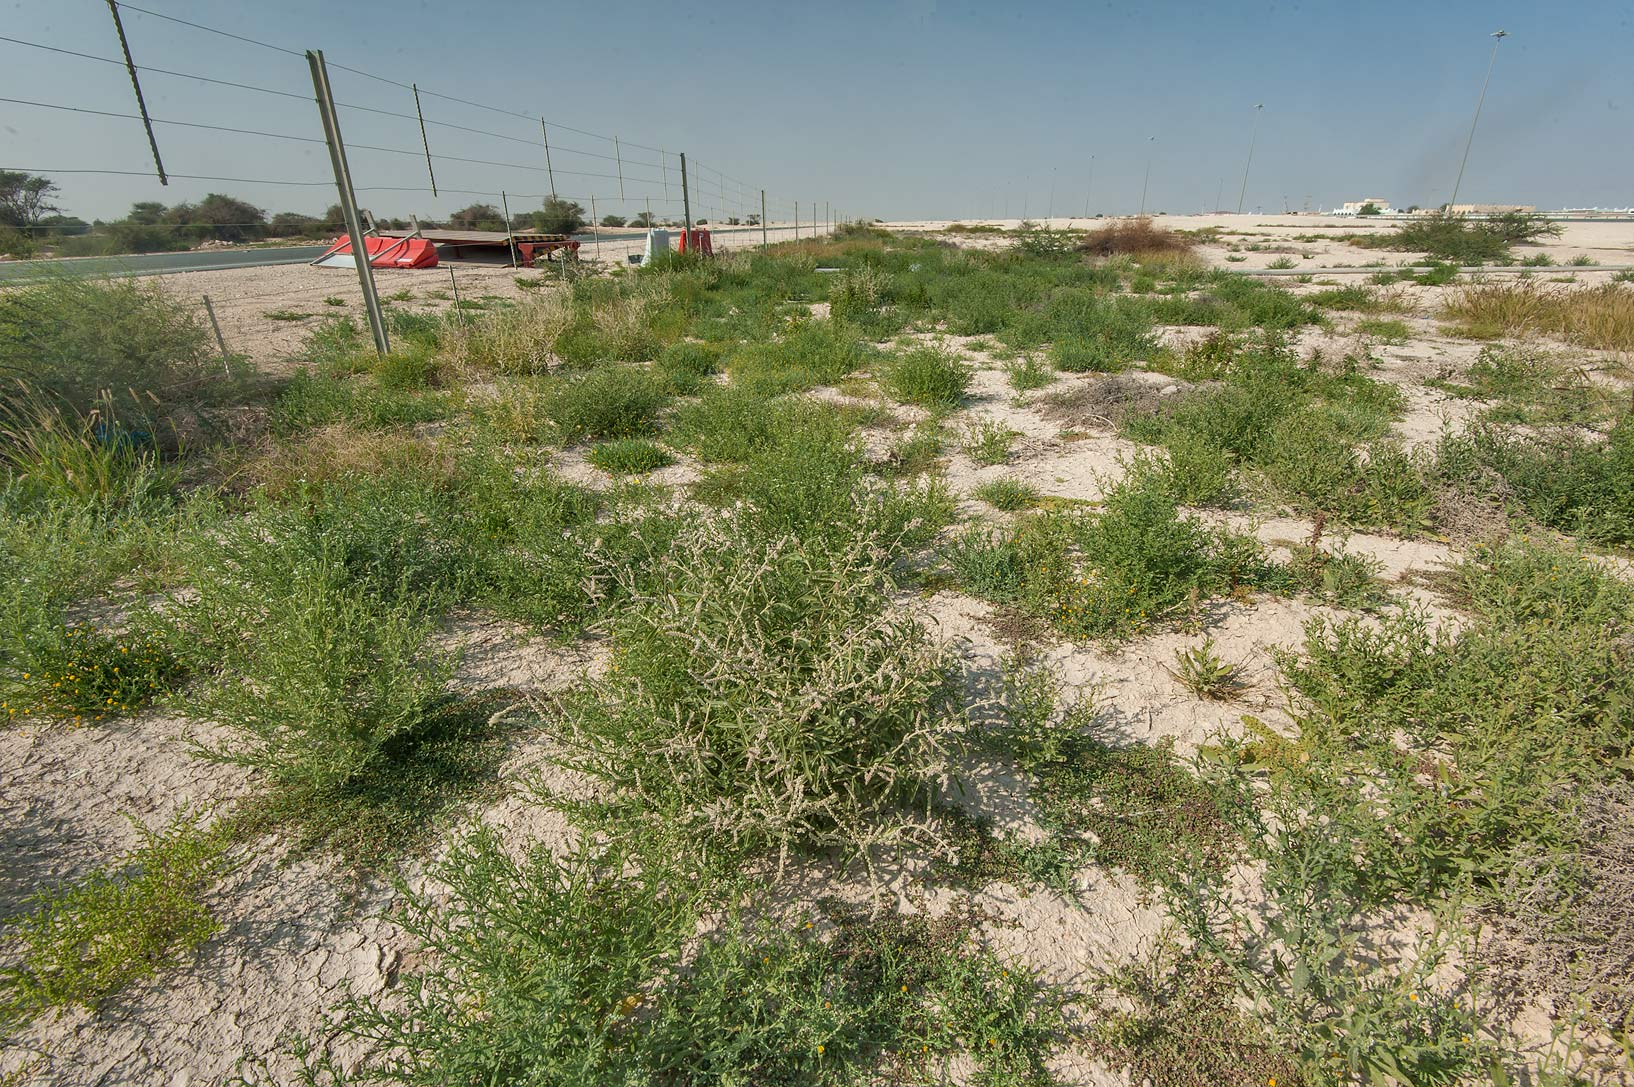 Fresh greenery after autumn rains on roadside of Dukhan Highway near Ash-Shahaniyah. Qatar